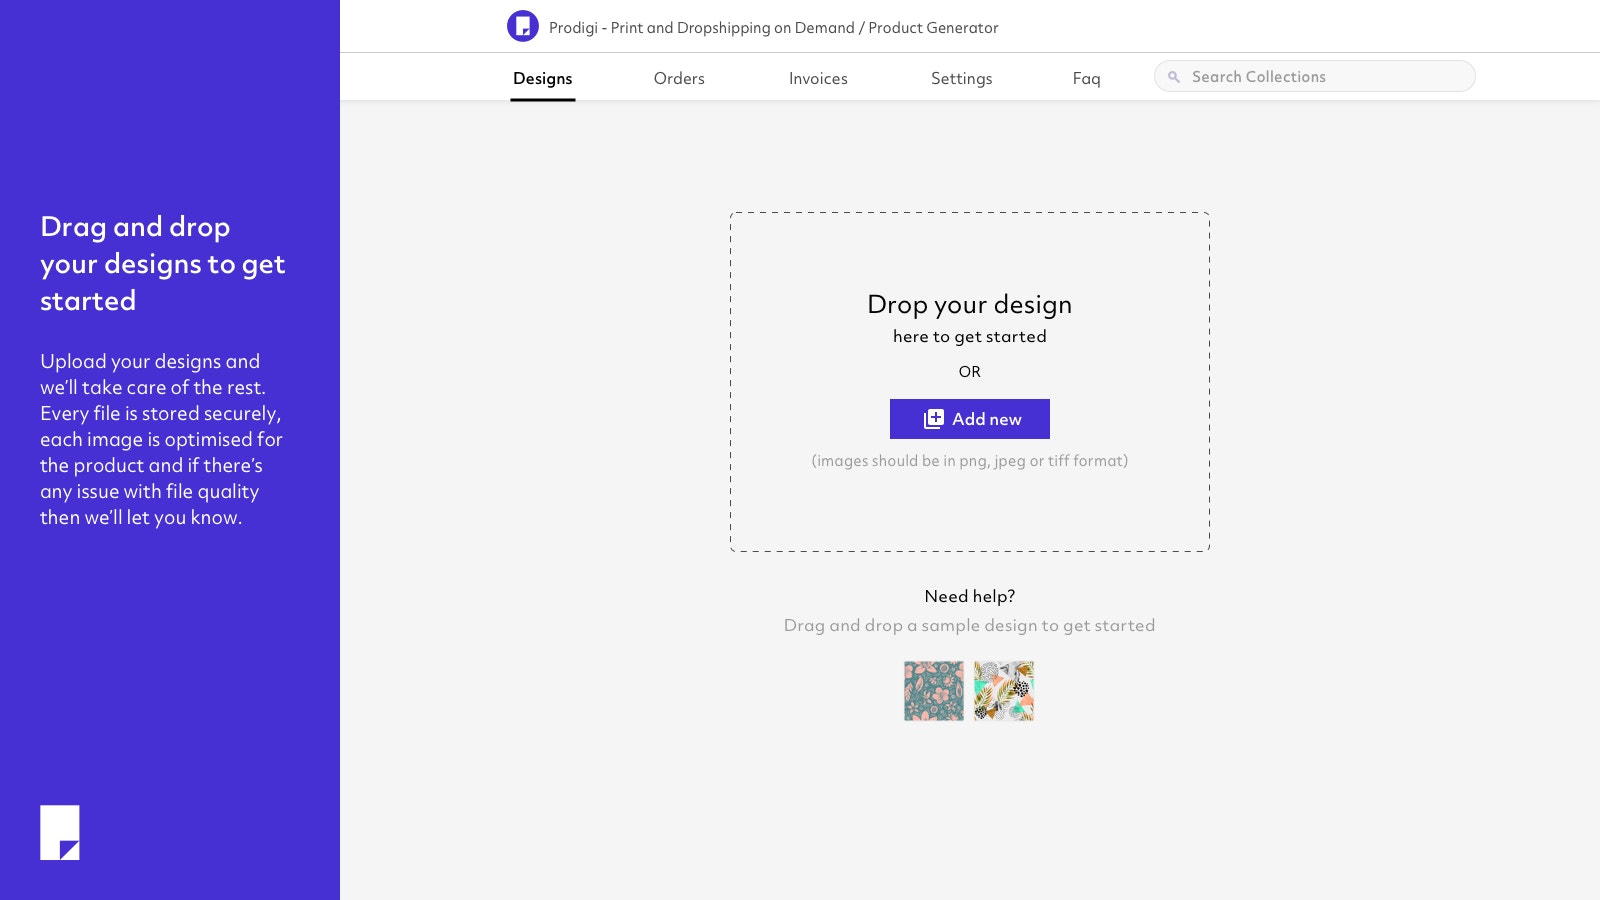 Drag and drop your designs to get started